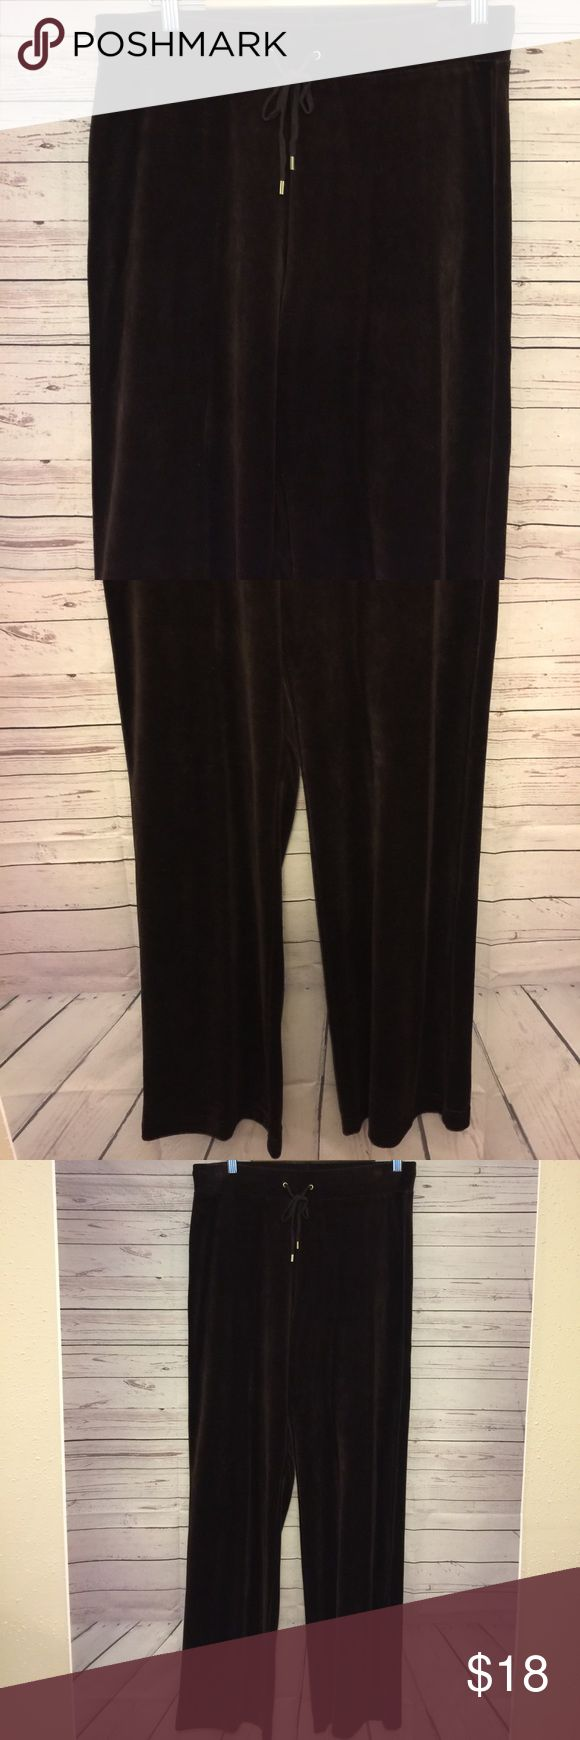 Jones New York Women's Size M Brown Velvet Pants Gently used no flaws waist 16 in Length 43 in inseam 32 in Jones New York Pants Track Pants & Joggers